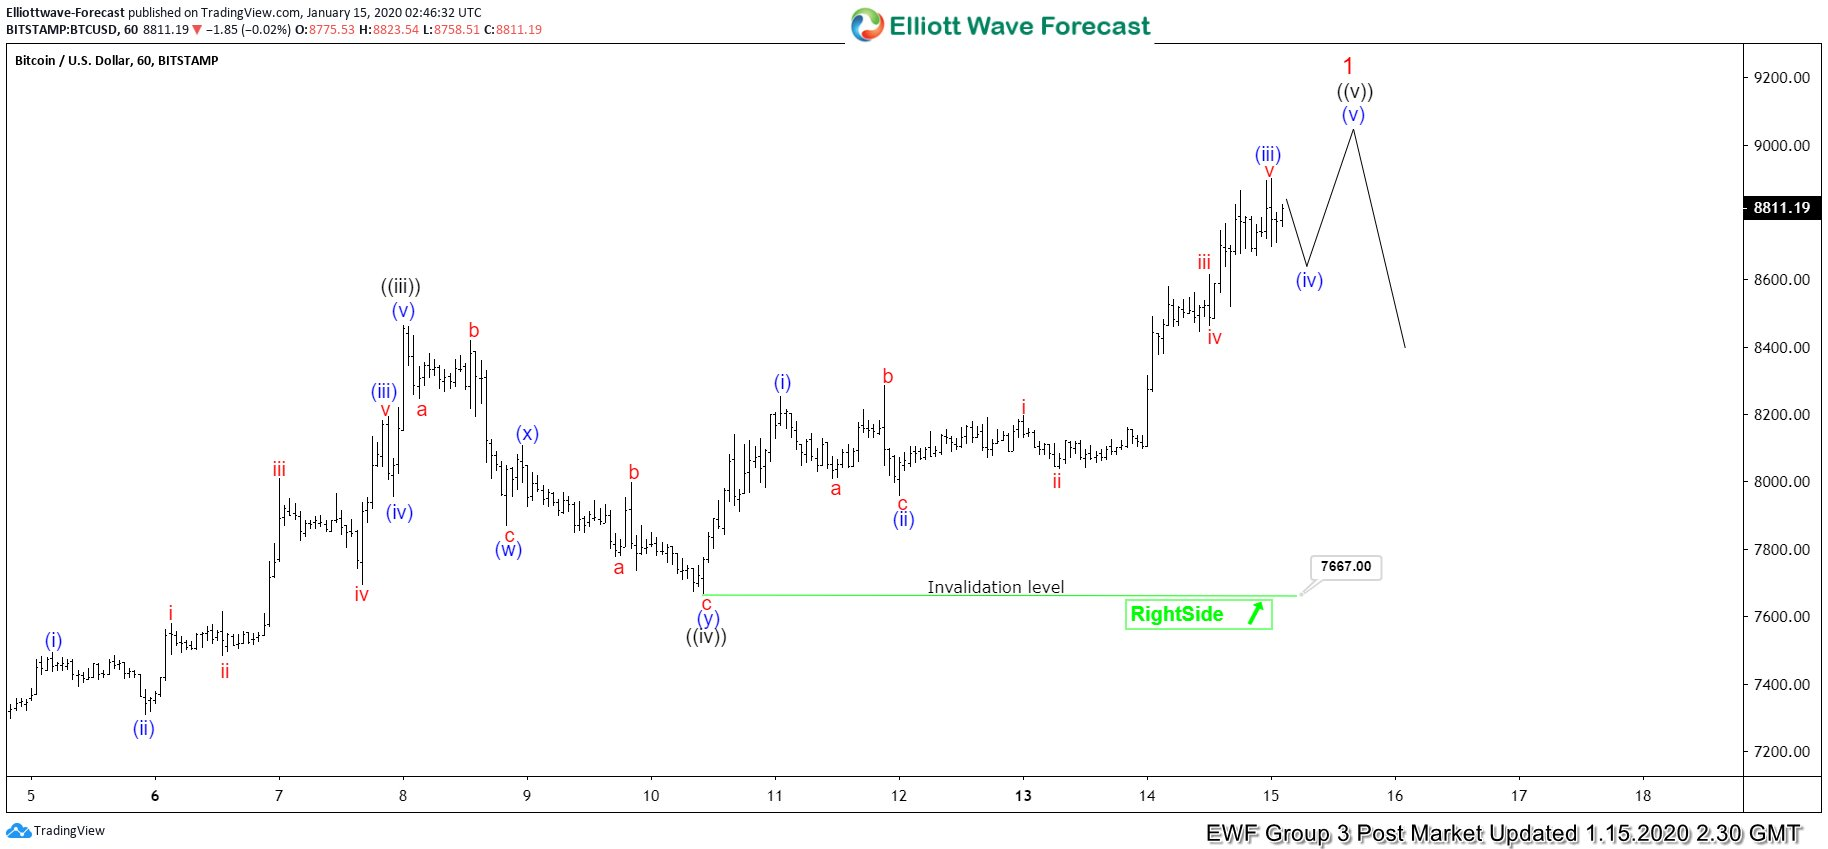 Elliott Wave View: Bitcoin (BTCUSD) Near The End of 5 Waves Rally